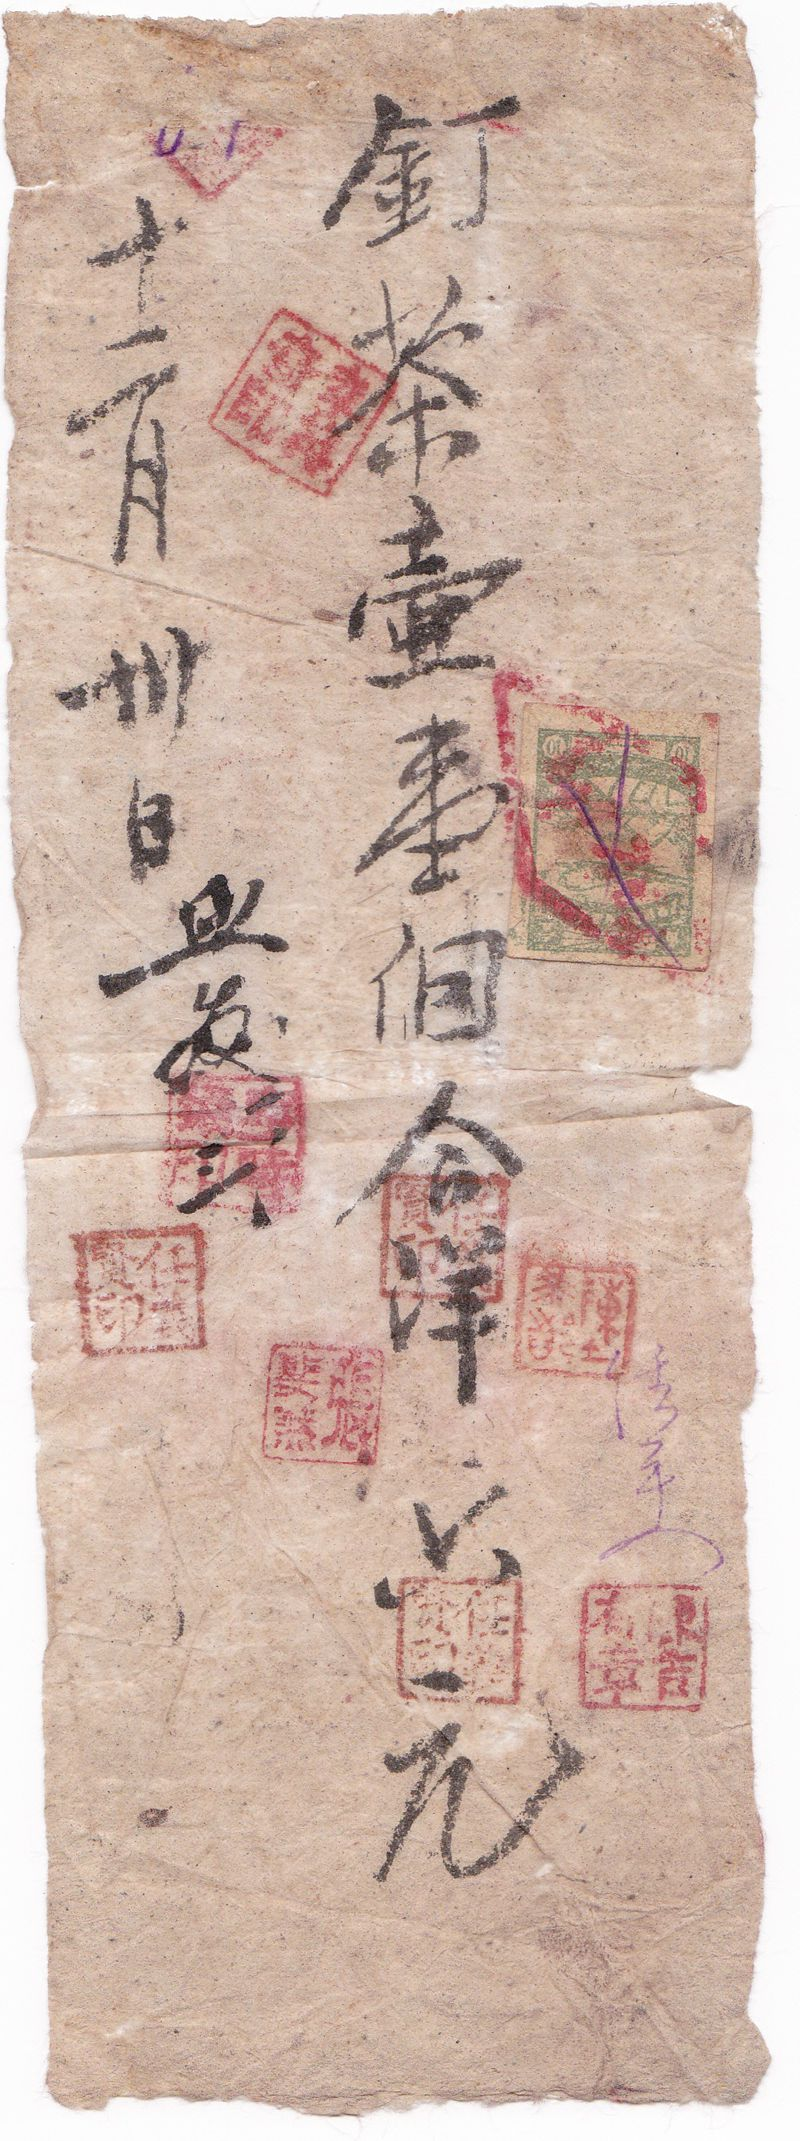 R2032, Revenue Stamp Sheet of China Sinkiang, 10 Cents, 1948